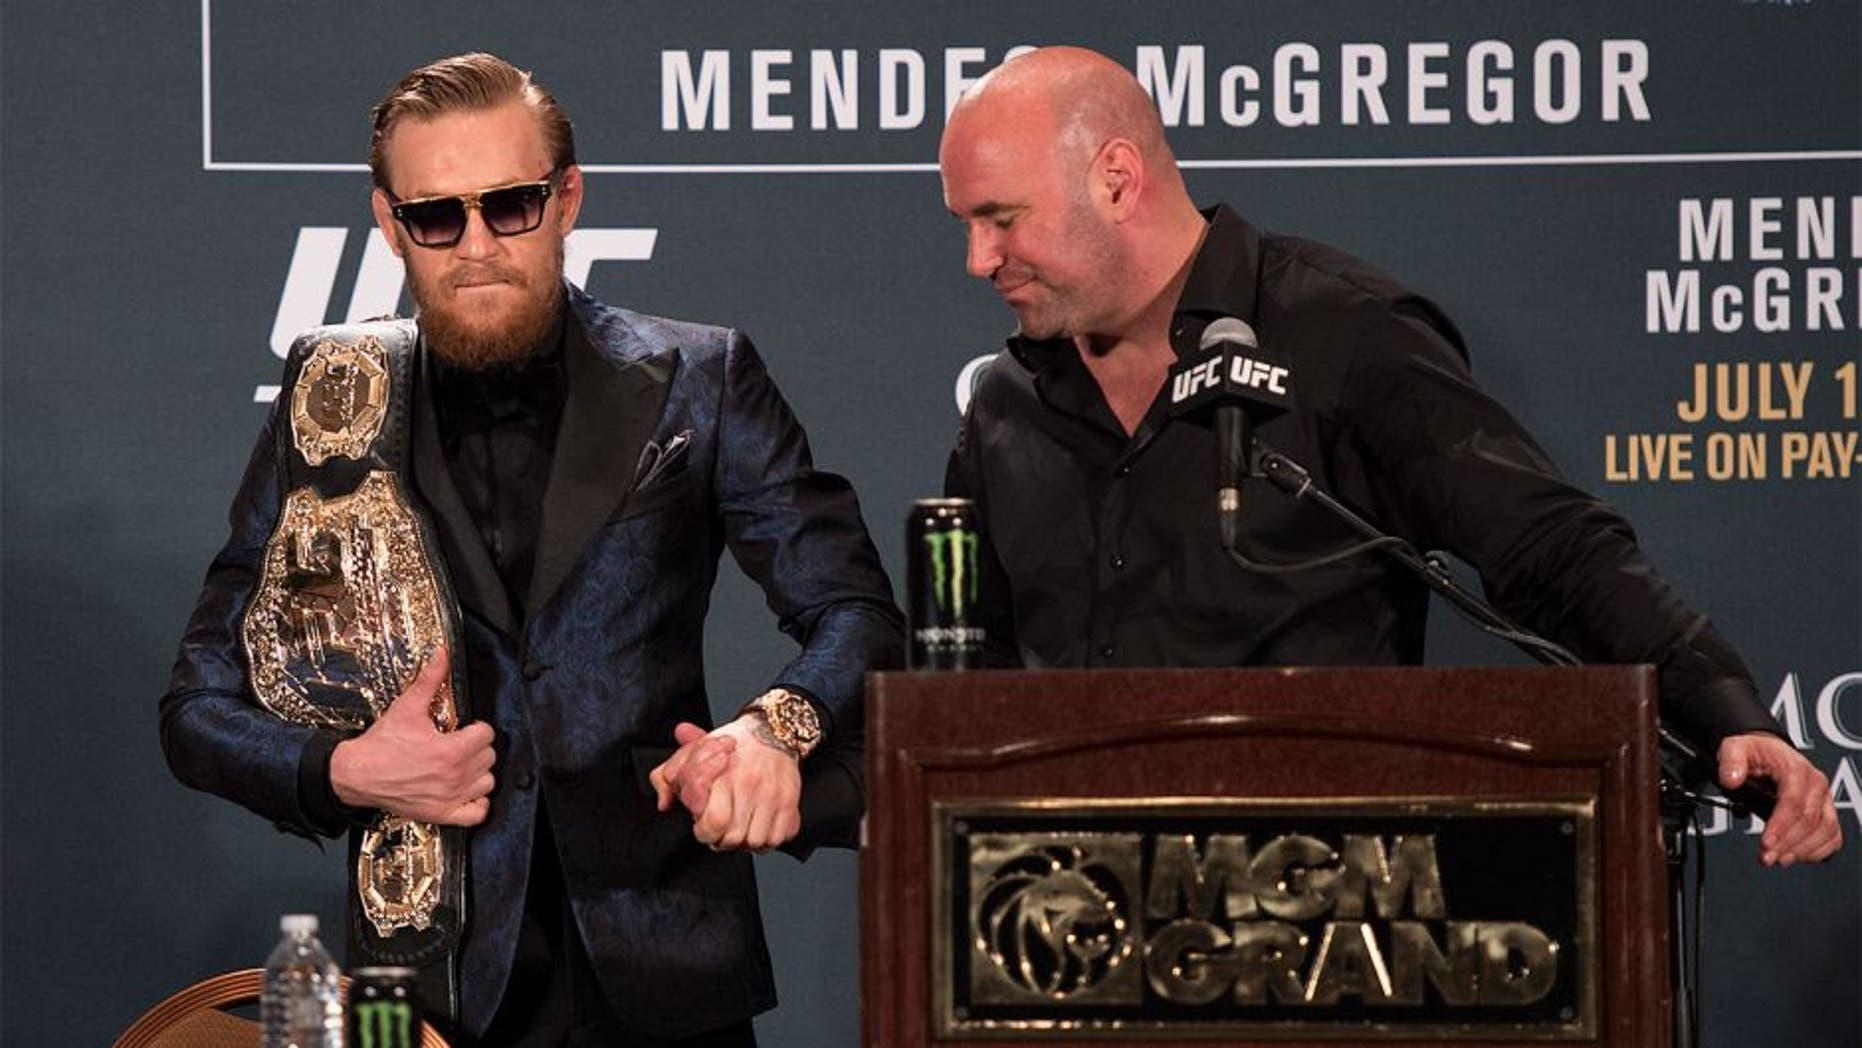 LAS VEGAS, NV - JULY 11: UFC President Dana White (R) greets UFC interim featherweight champion Conor McGregor during the UFC 189 post fight press conference at the MGM Grand Garden Arena on July 11, 2015 in Las Vegas, Nevada. (Photo by Jeff Bottari/Zuffa LLC/Zuffa LLC via Getty Images)